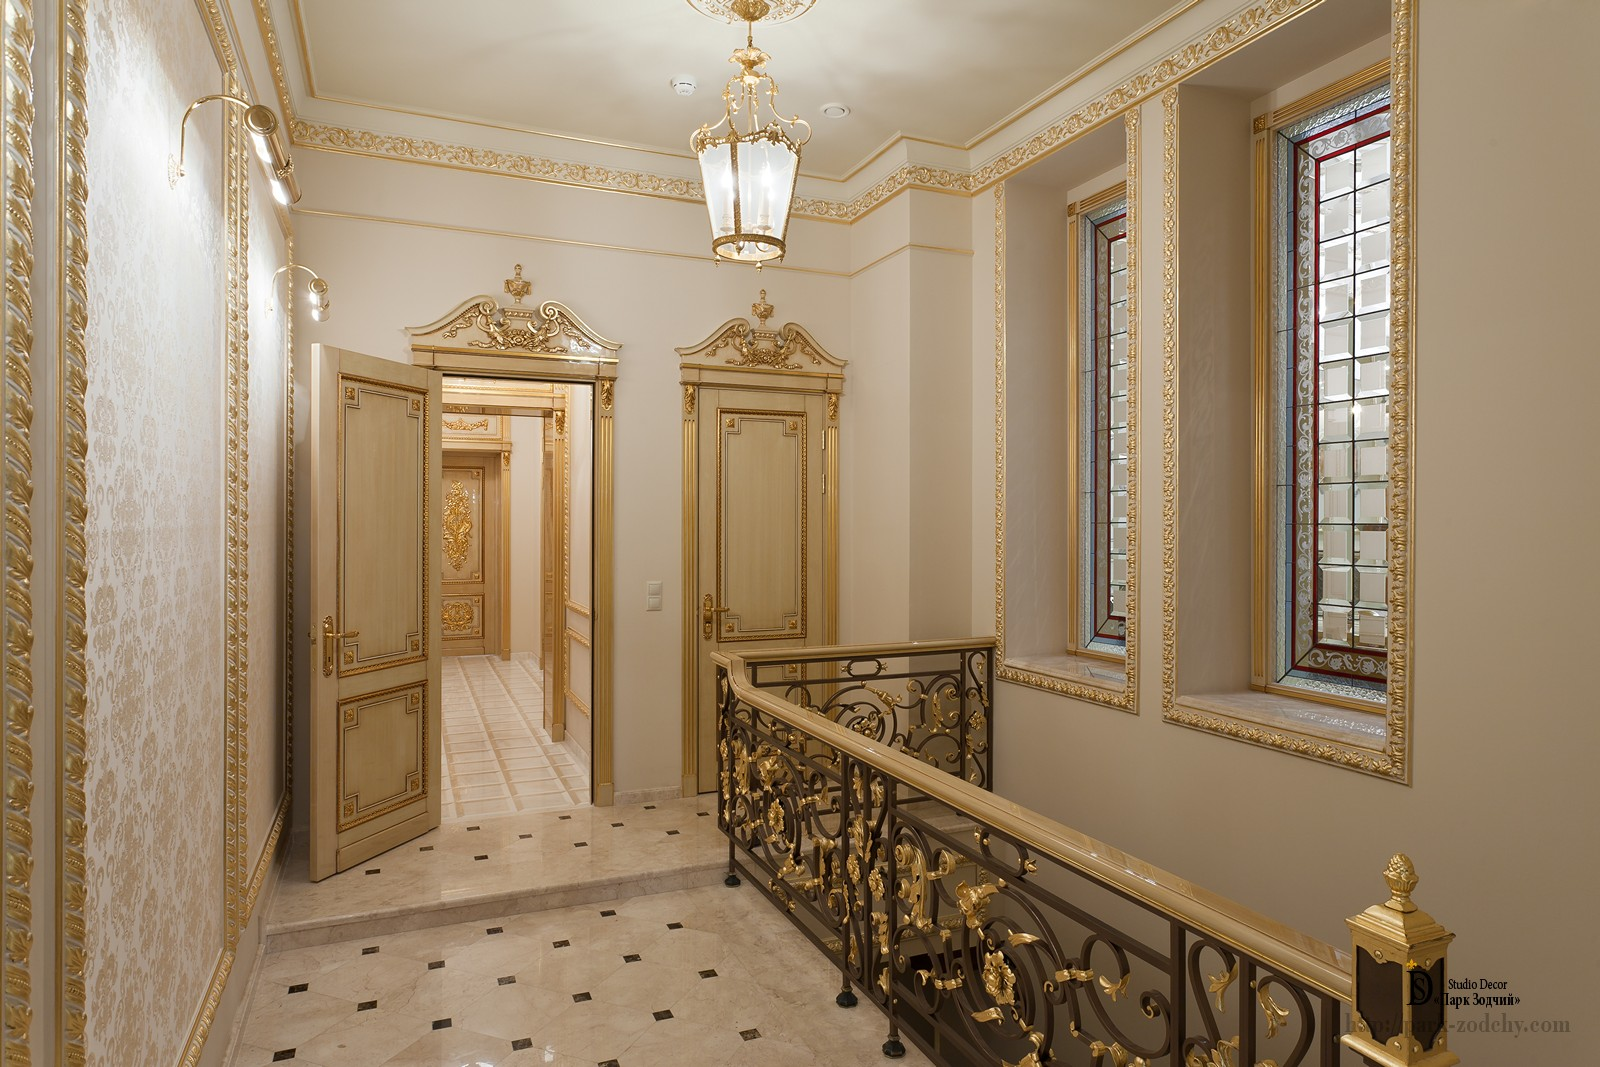 Gilding in the decoration of the staircase of a country mansion